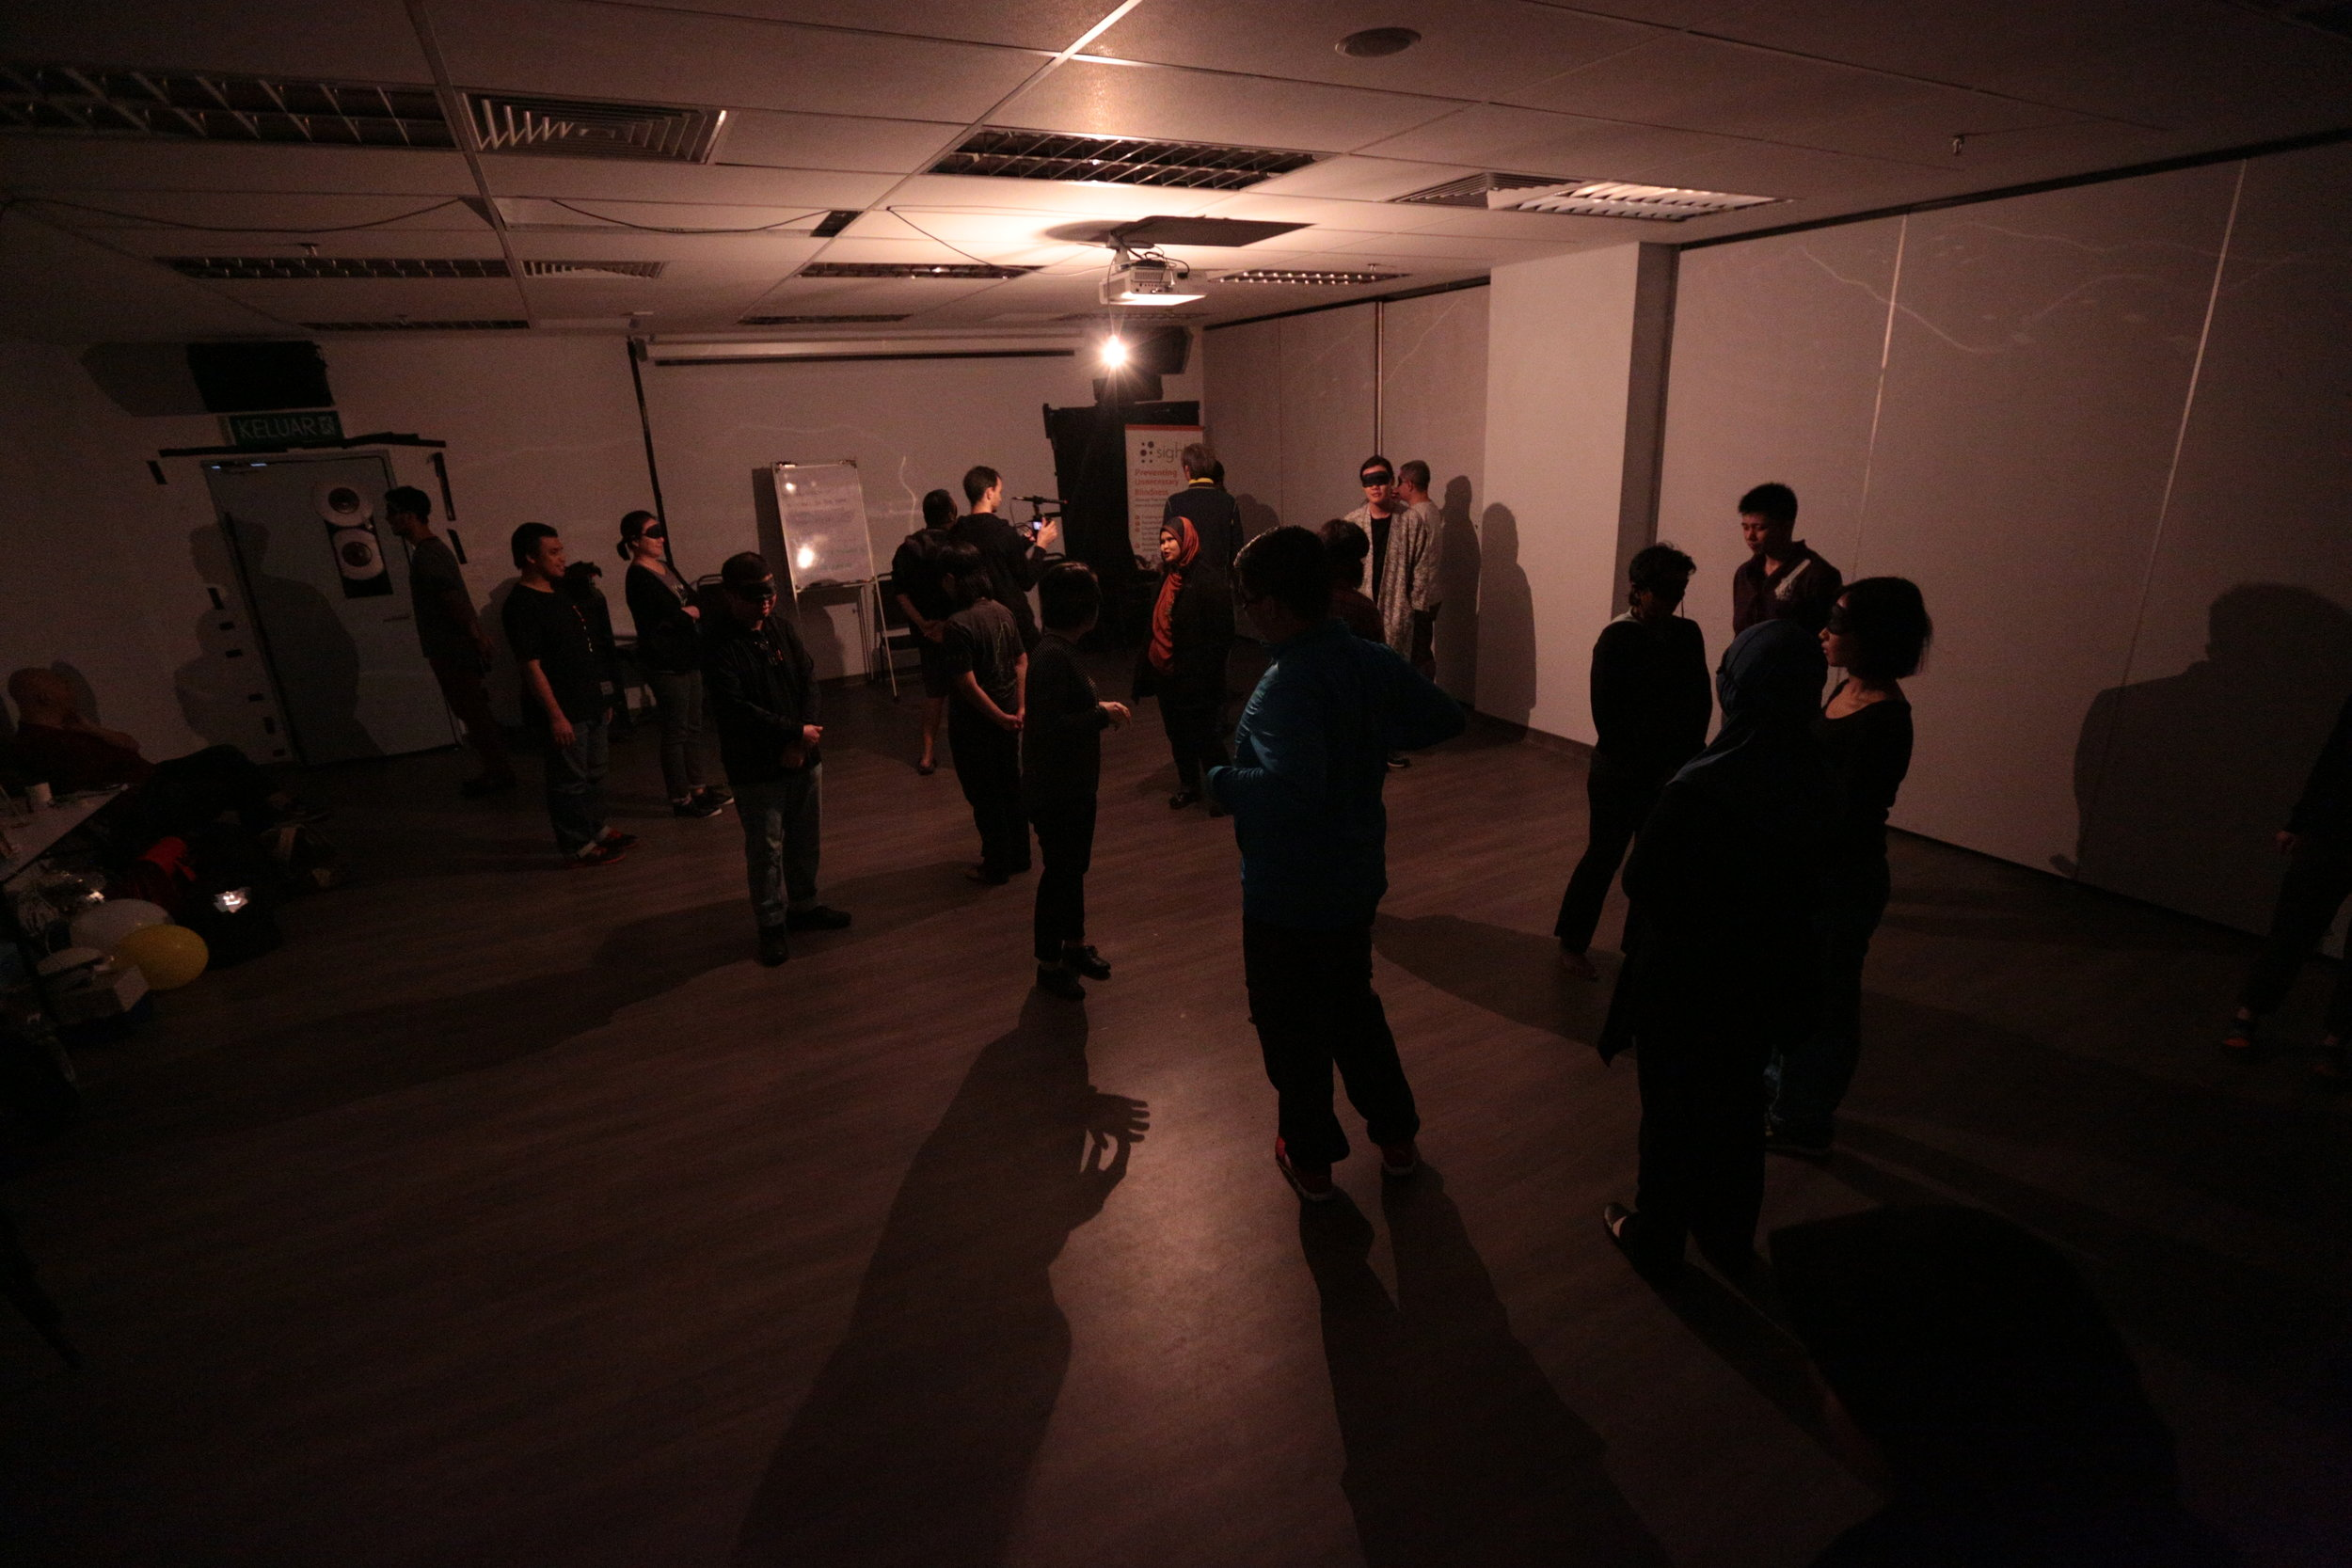 Exercise in darkness shift lab.JPG